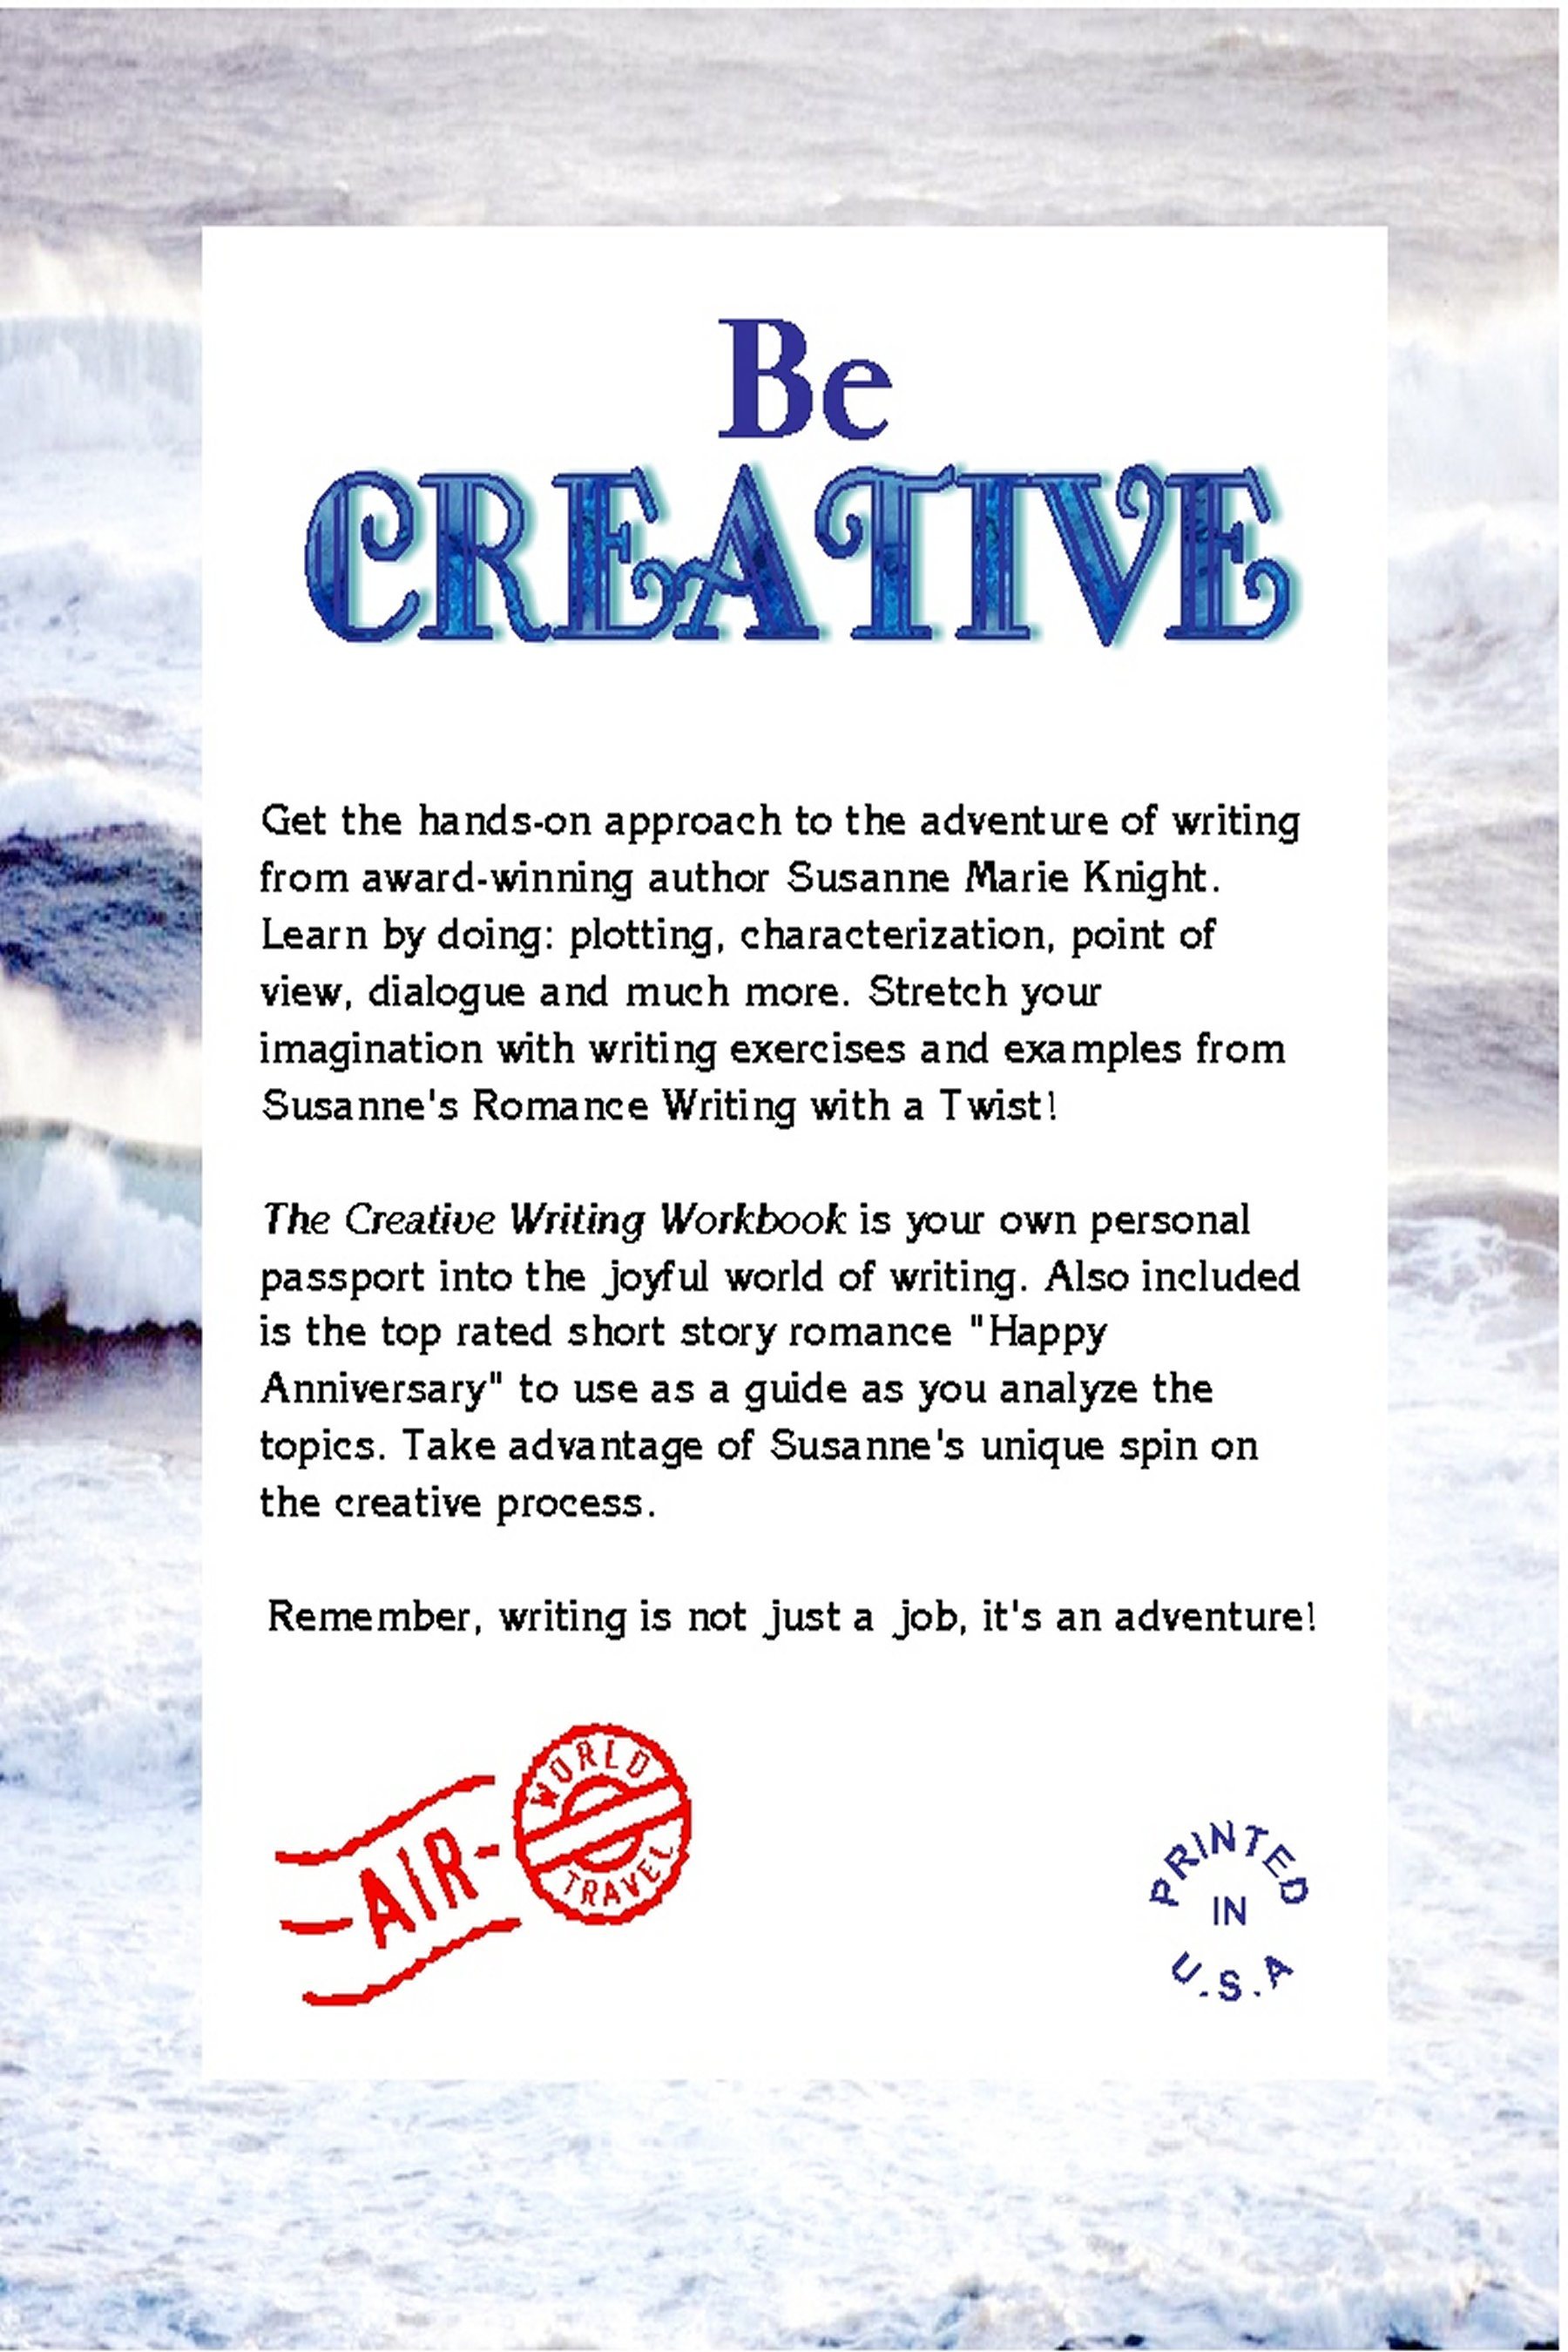 Find A Professional To Write Your Essay At Creative